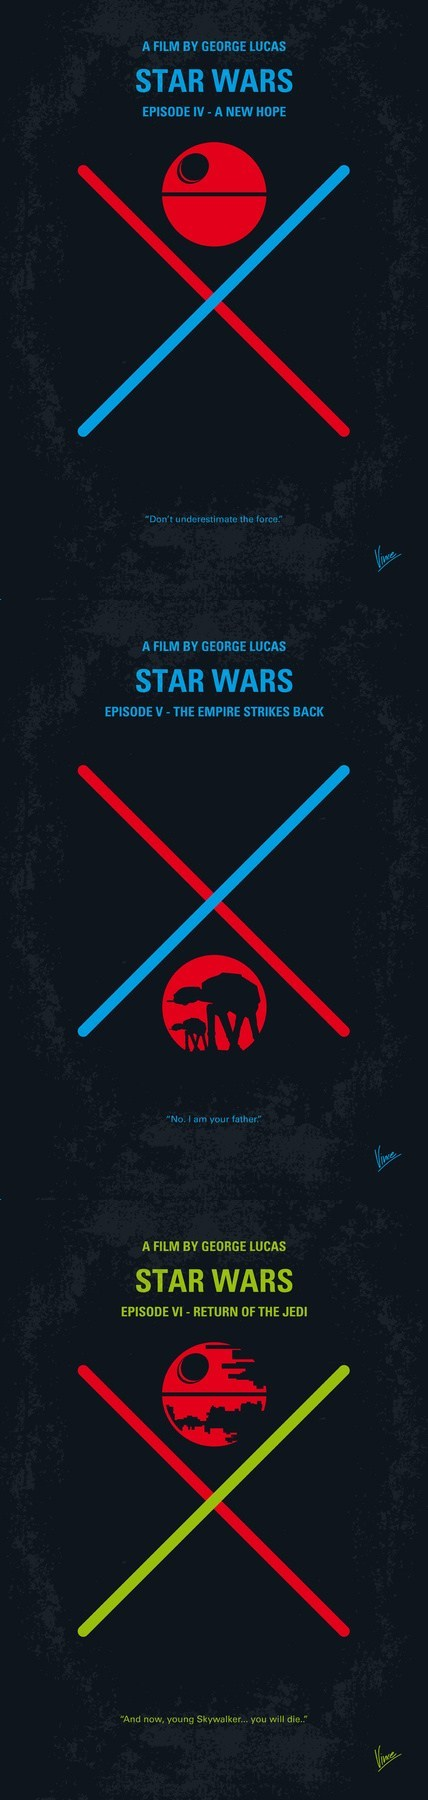 A New Hope Empire Strikes Back minimalism posters return of the jedi star wars trilogy